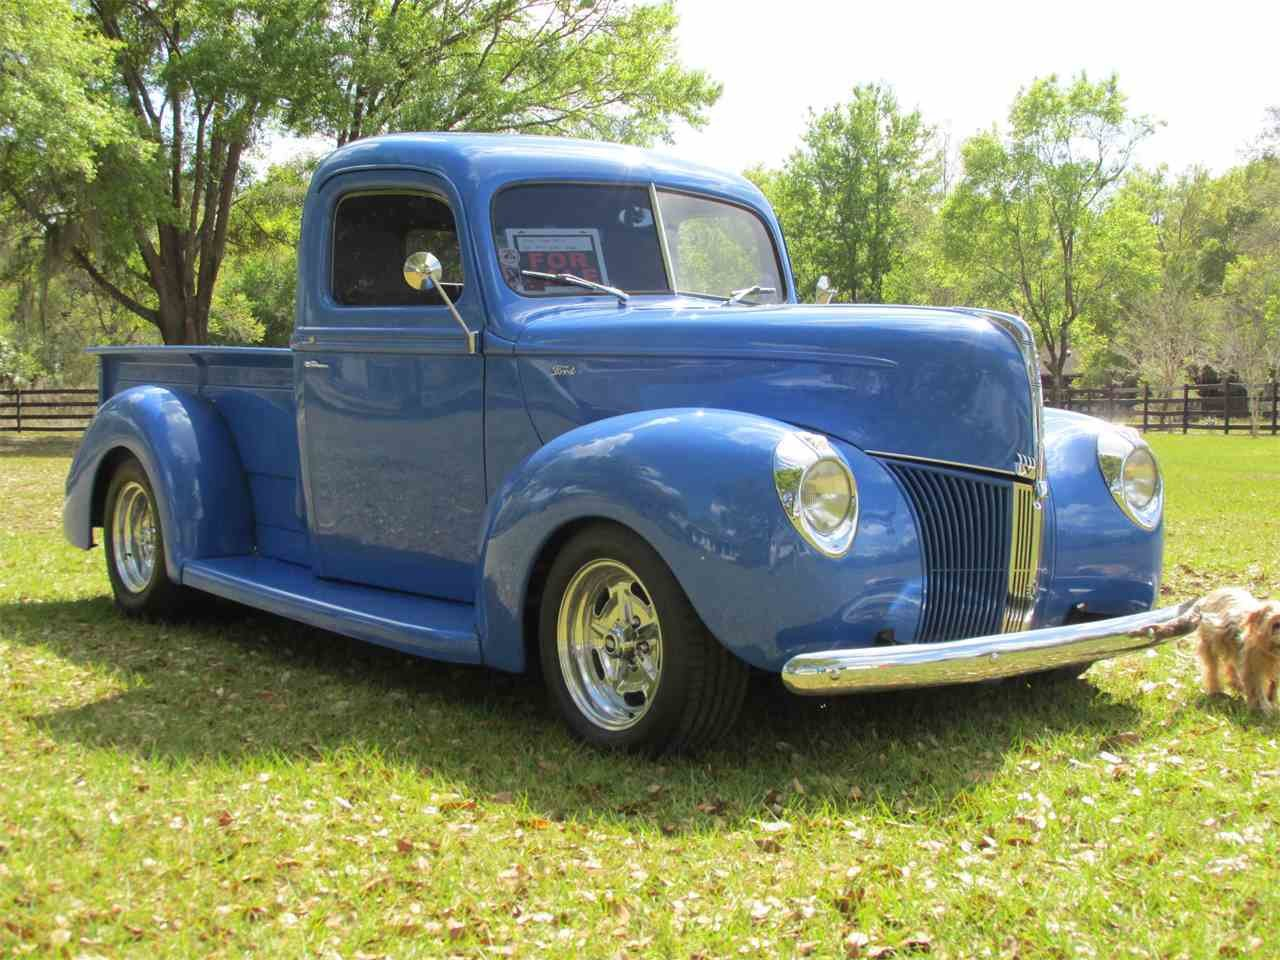 New 1940 Ford Pickup For Sale Classiccars Com Cc 964802 On This Month Original 1024 x 768